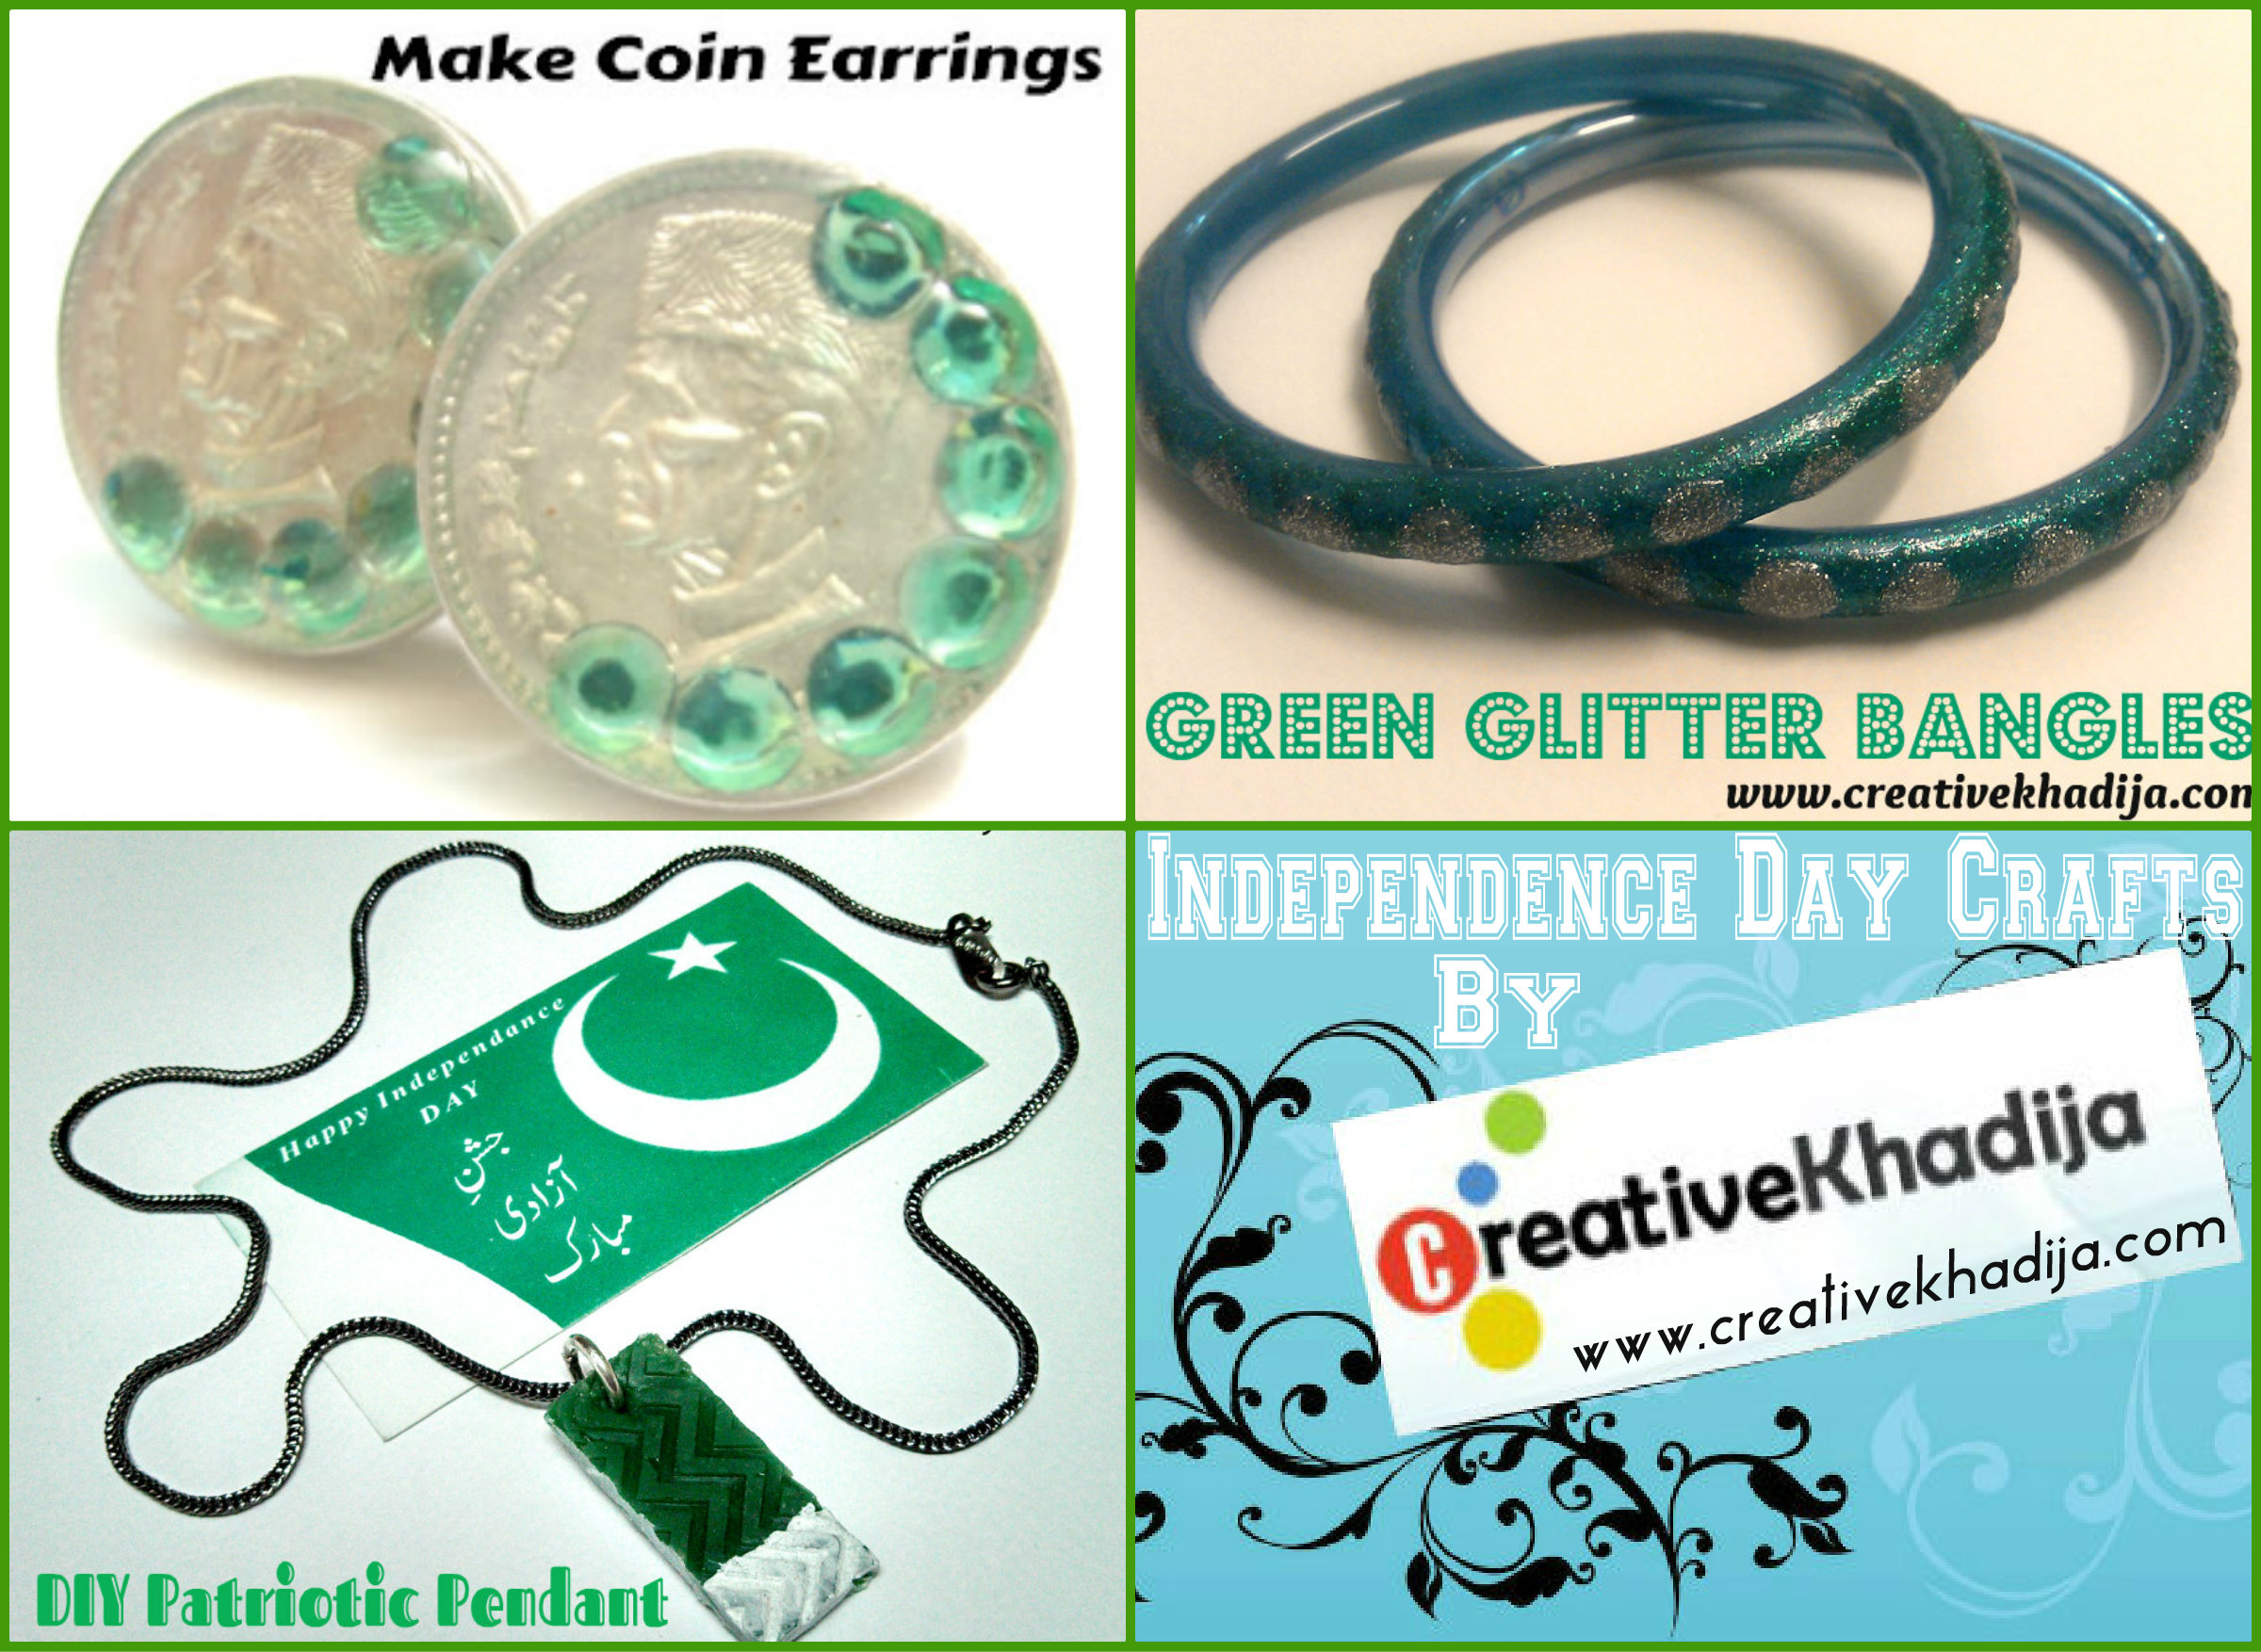 independence day crafts by creative khadija